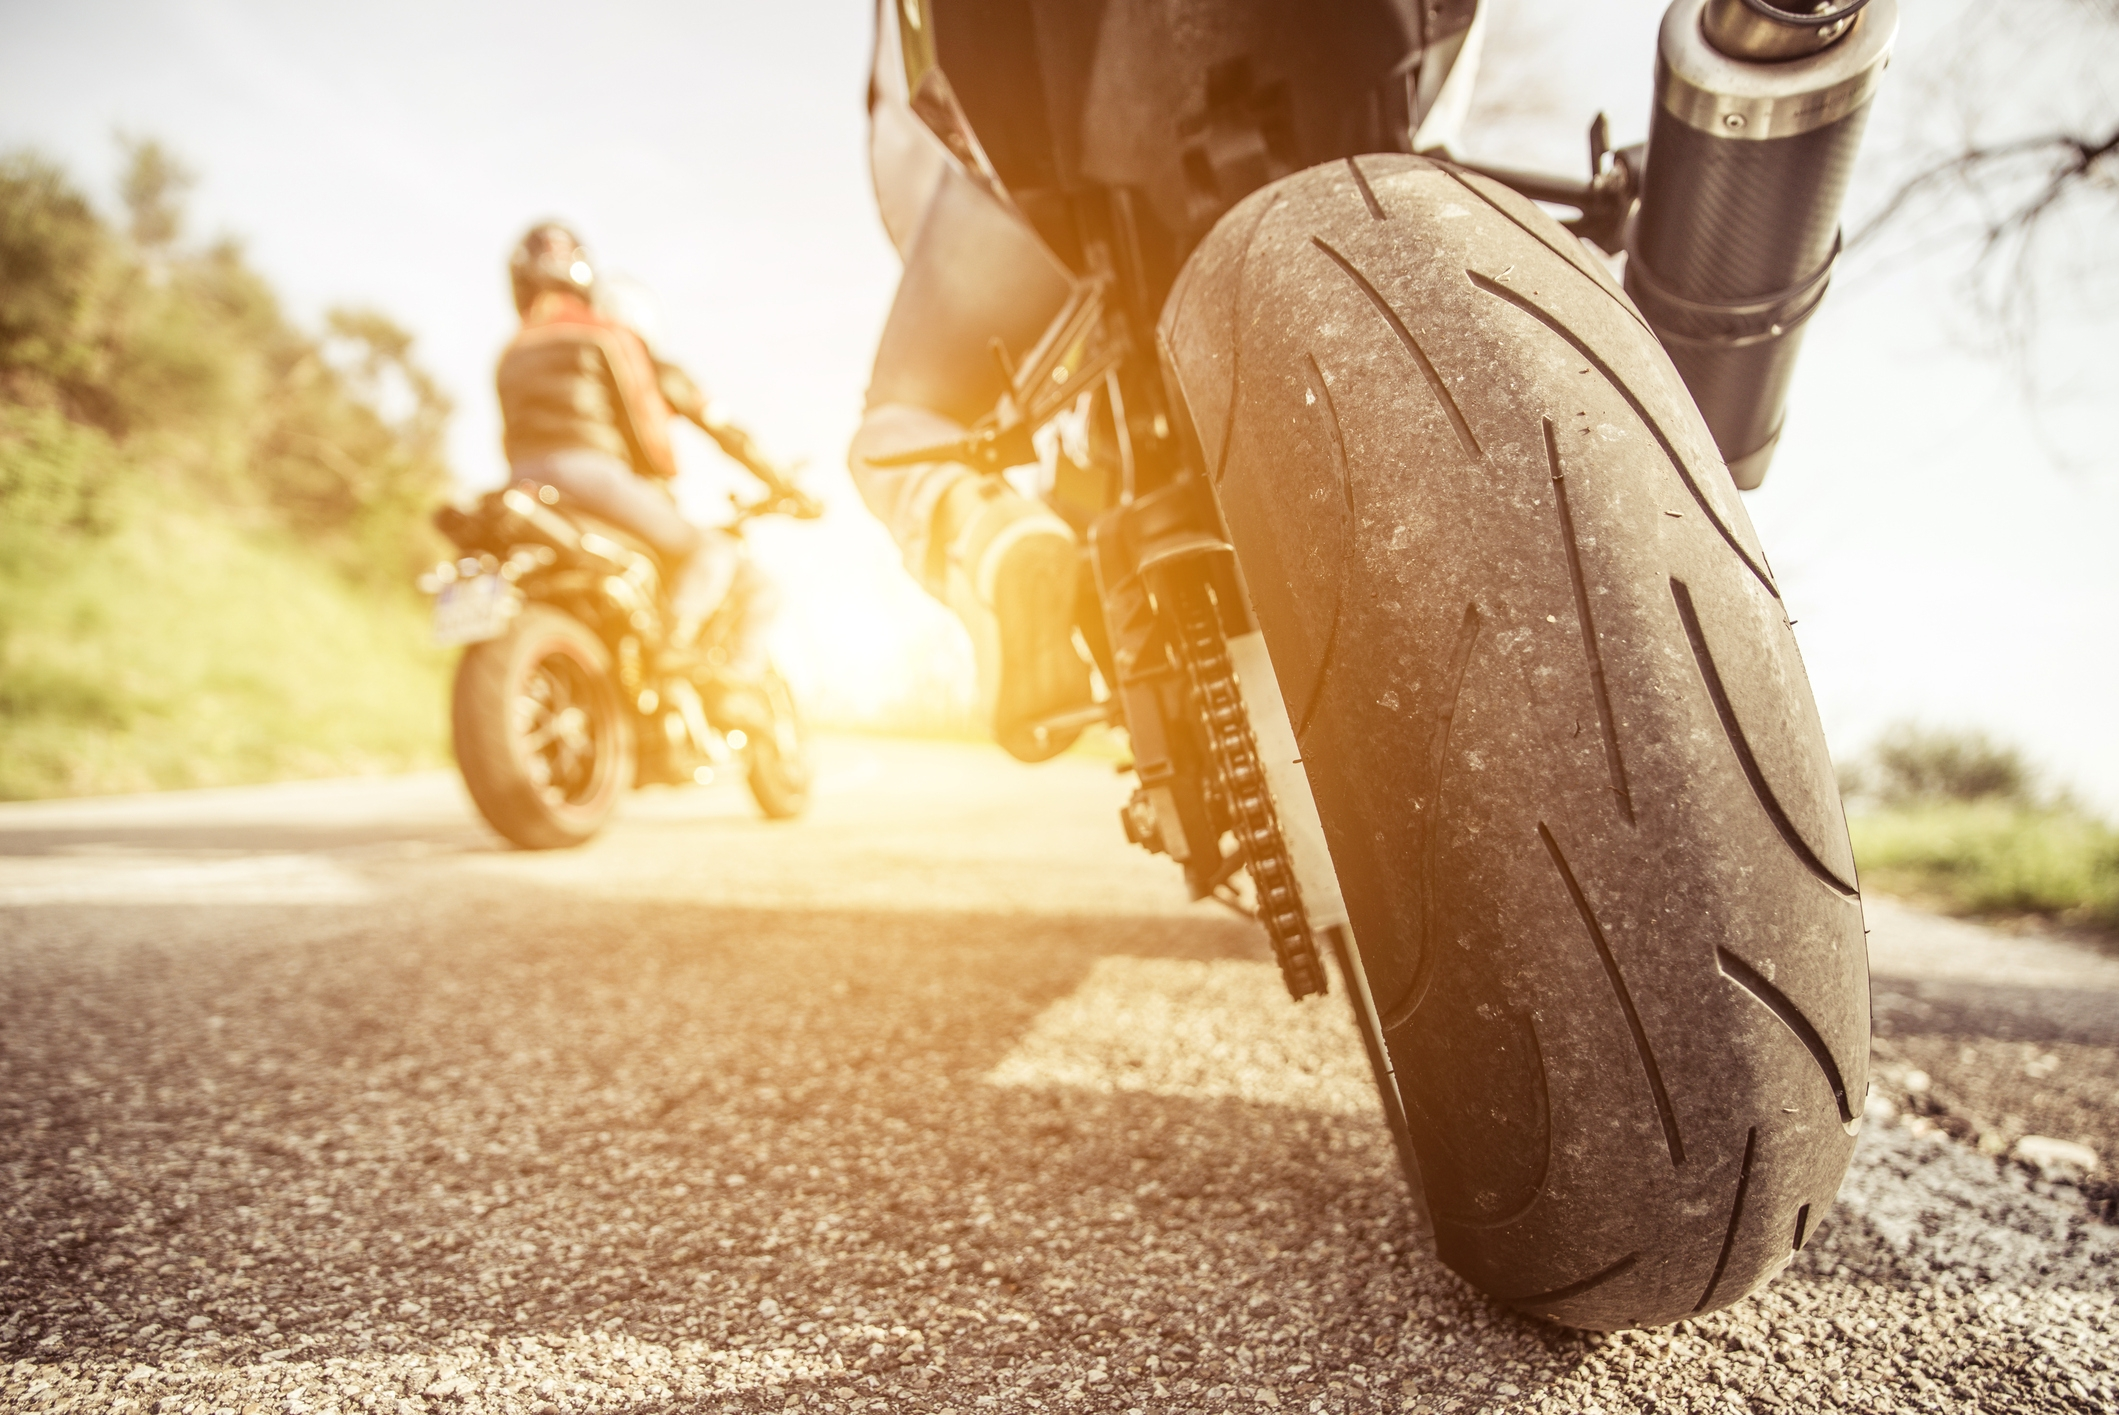 Motorcyclists are headed to PORT DOVER today for Friday the 13th